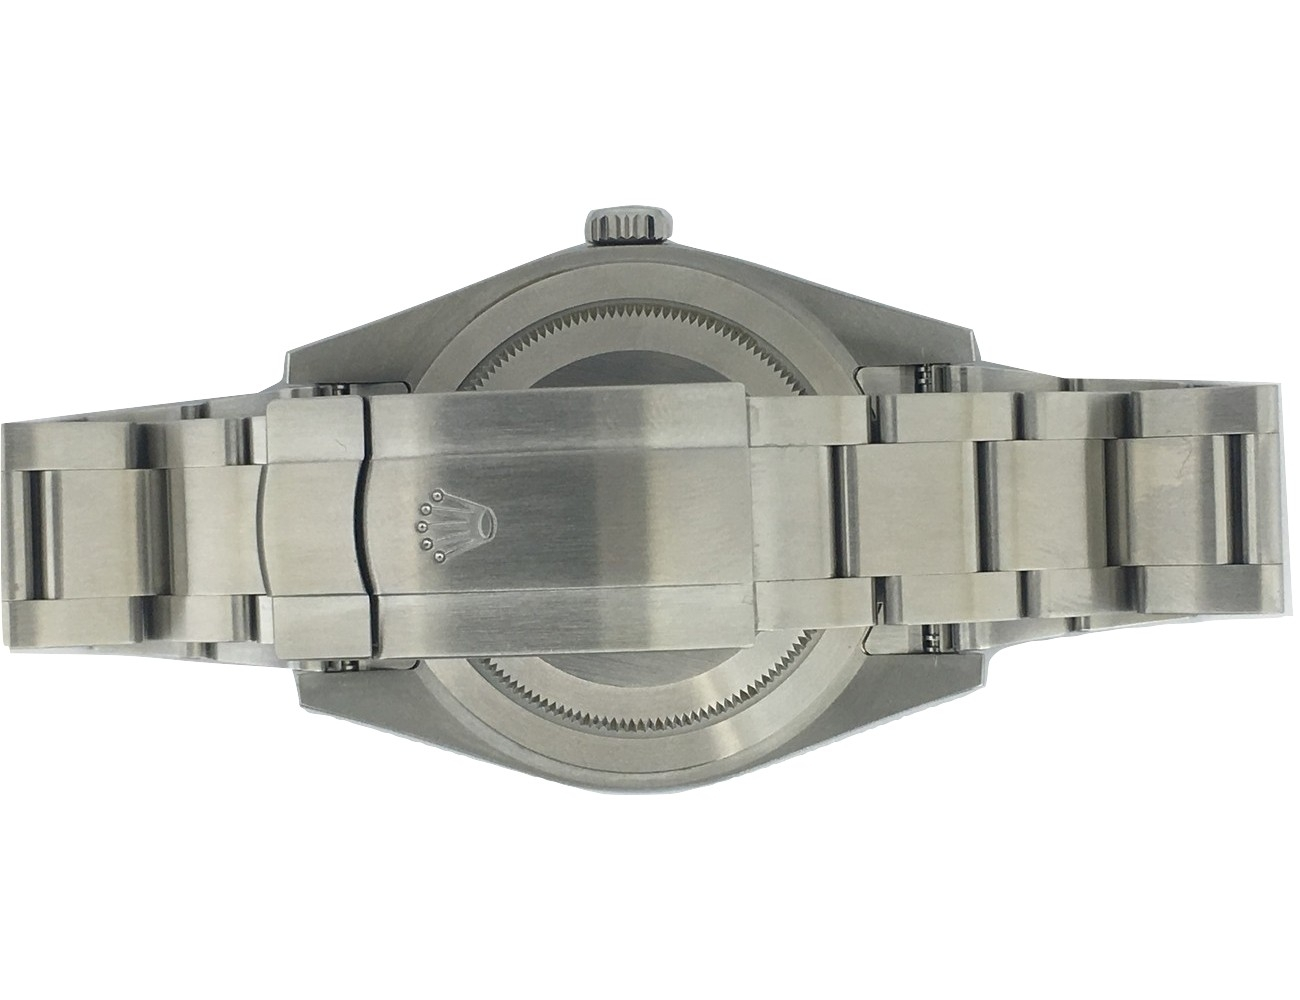 Montre occasion Rolex Oyster Perpetual 114300.